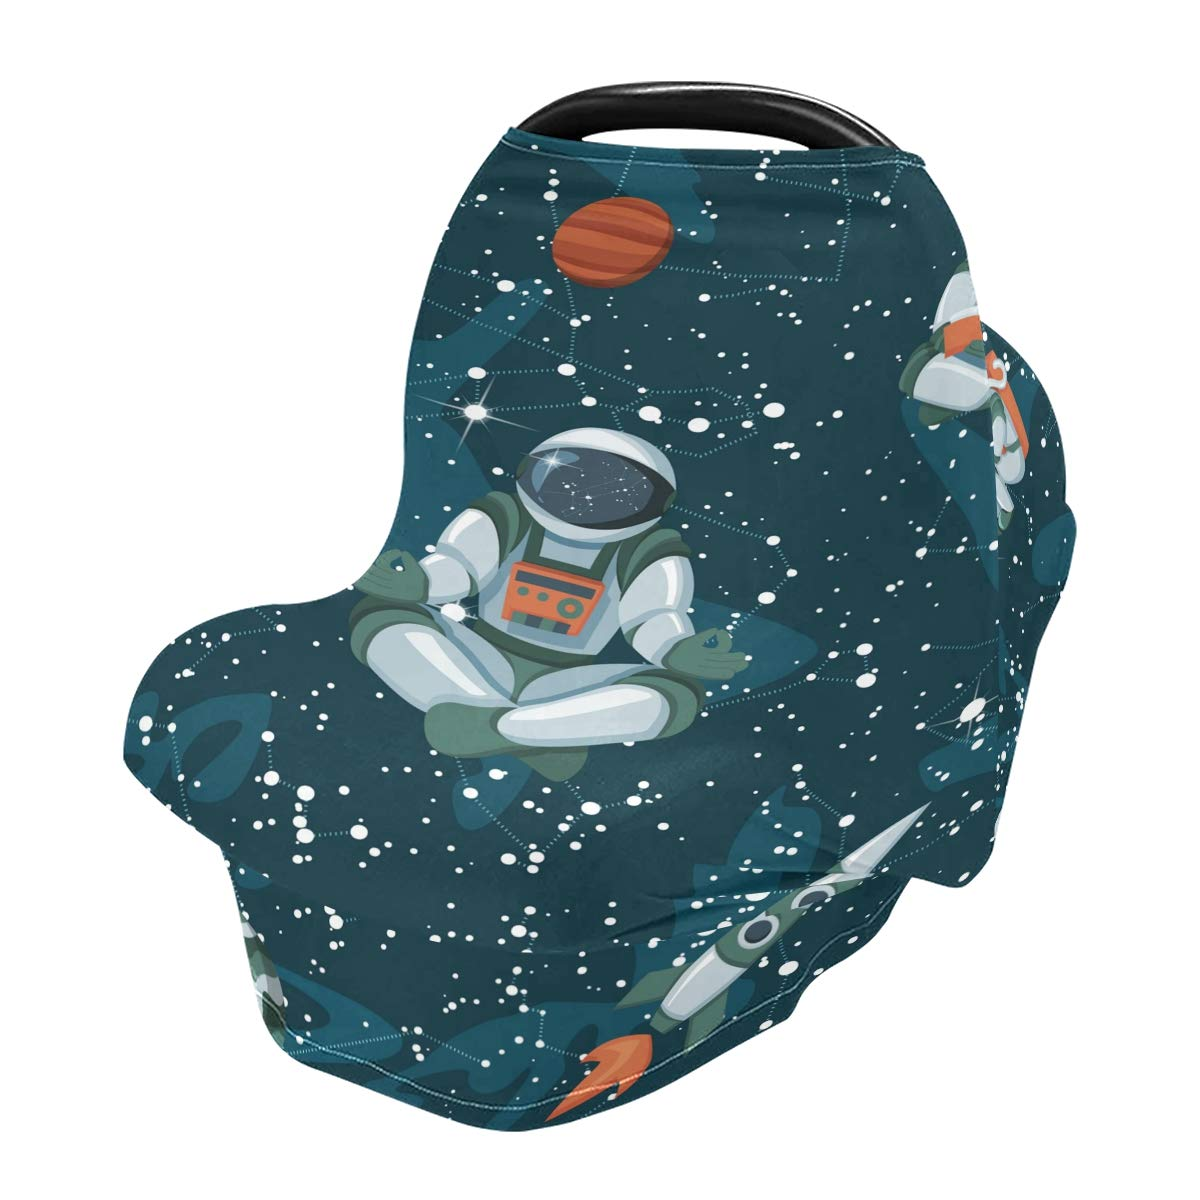 Nursing Cover Breastfeeding Scarf Space Galaxy- Baby Car Seat Covers, Infant Stroller Cover, Carseat Canopy for Girls and Boys(47)